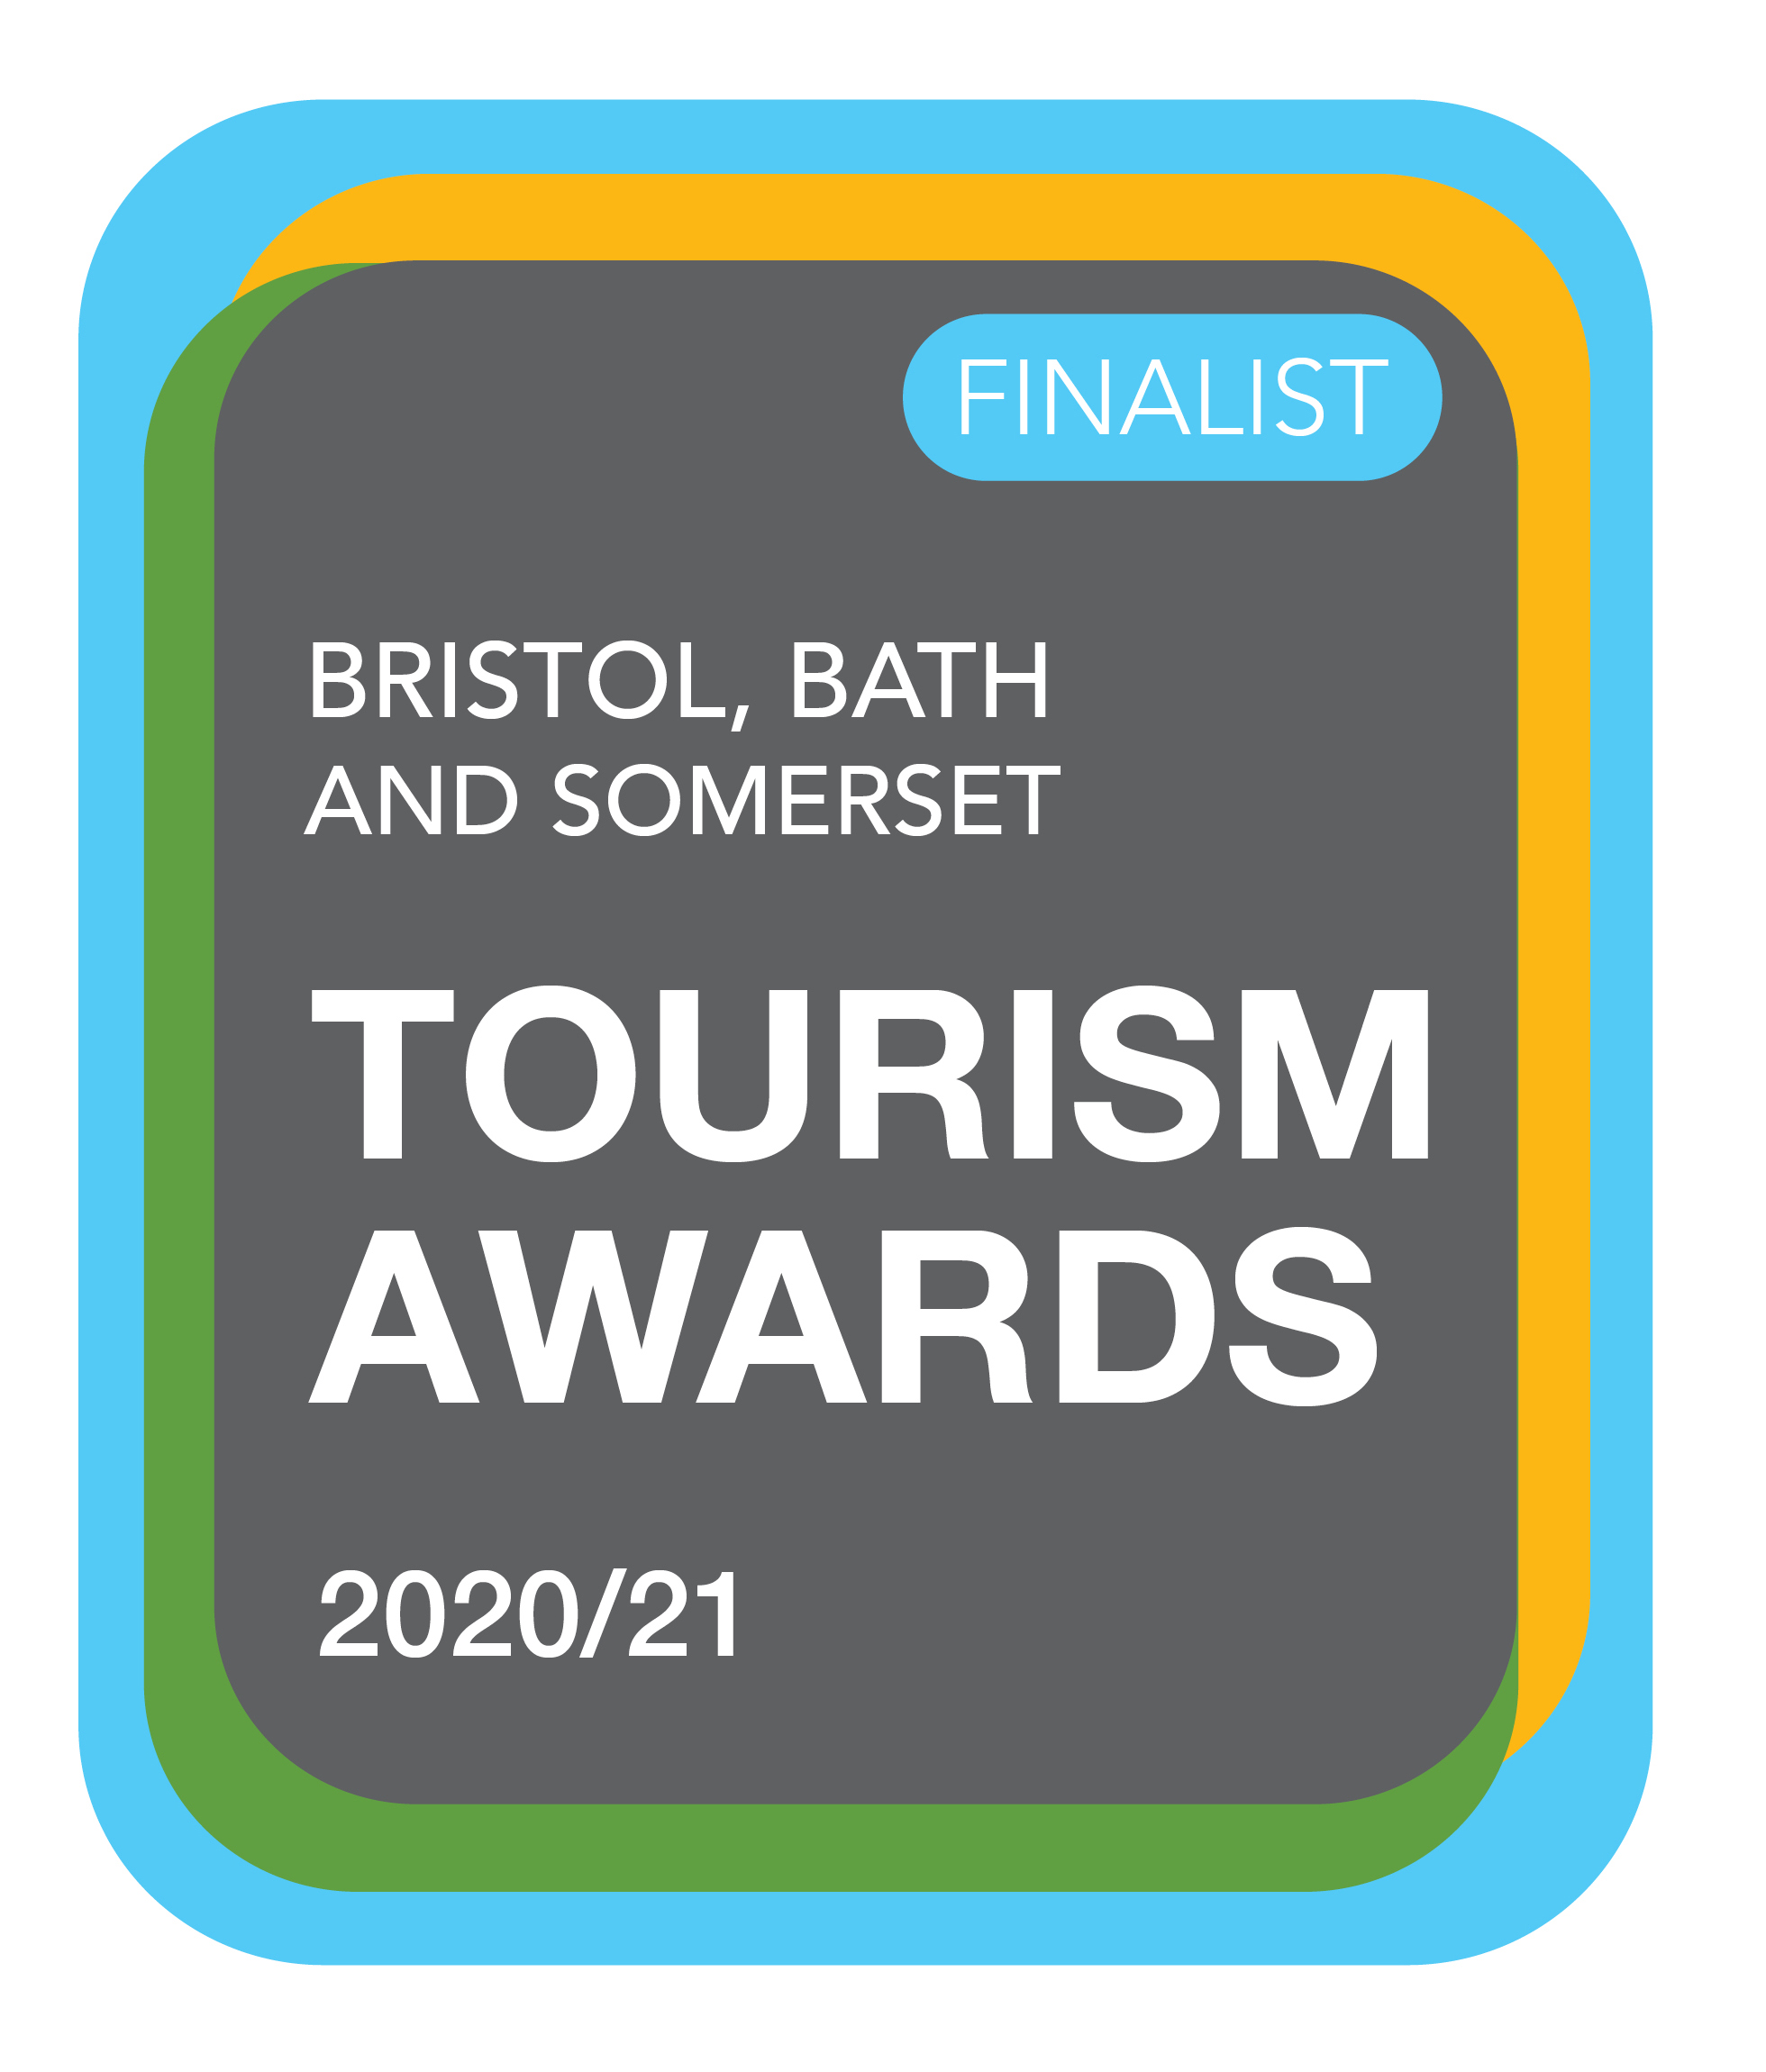 Bristol, Bath and Somerset Tourism Awards 2020/21